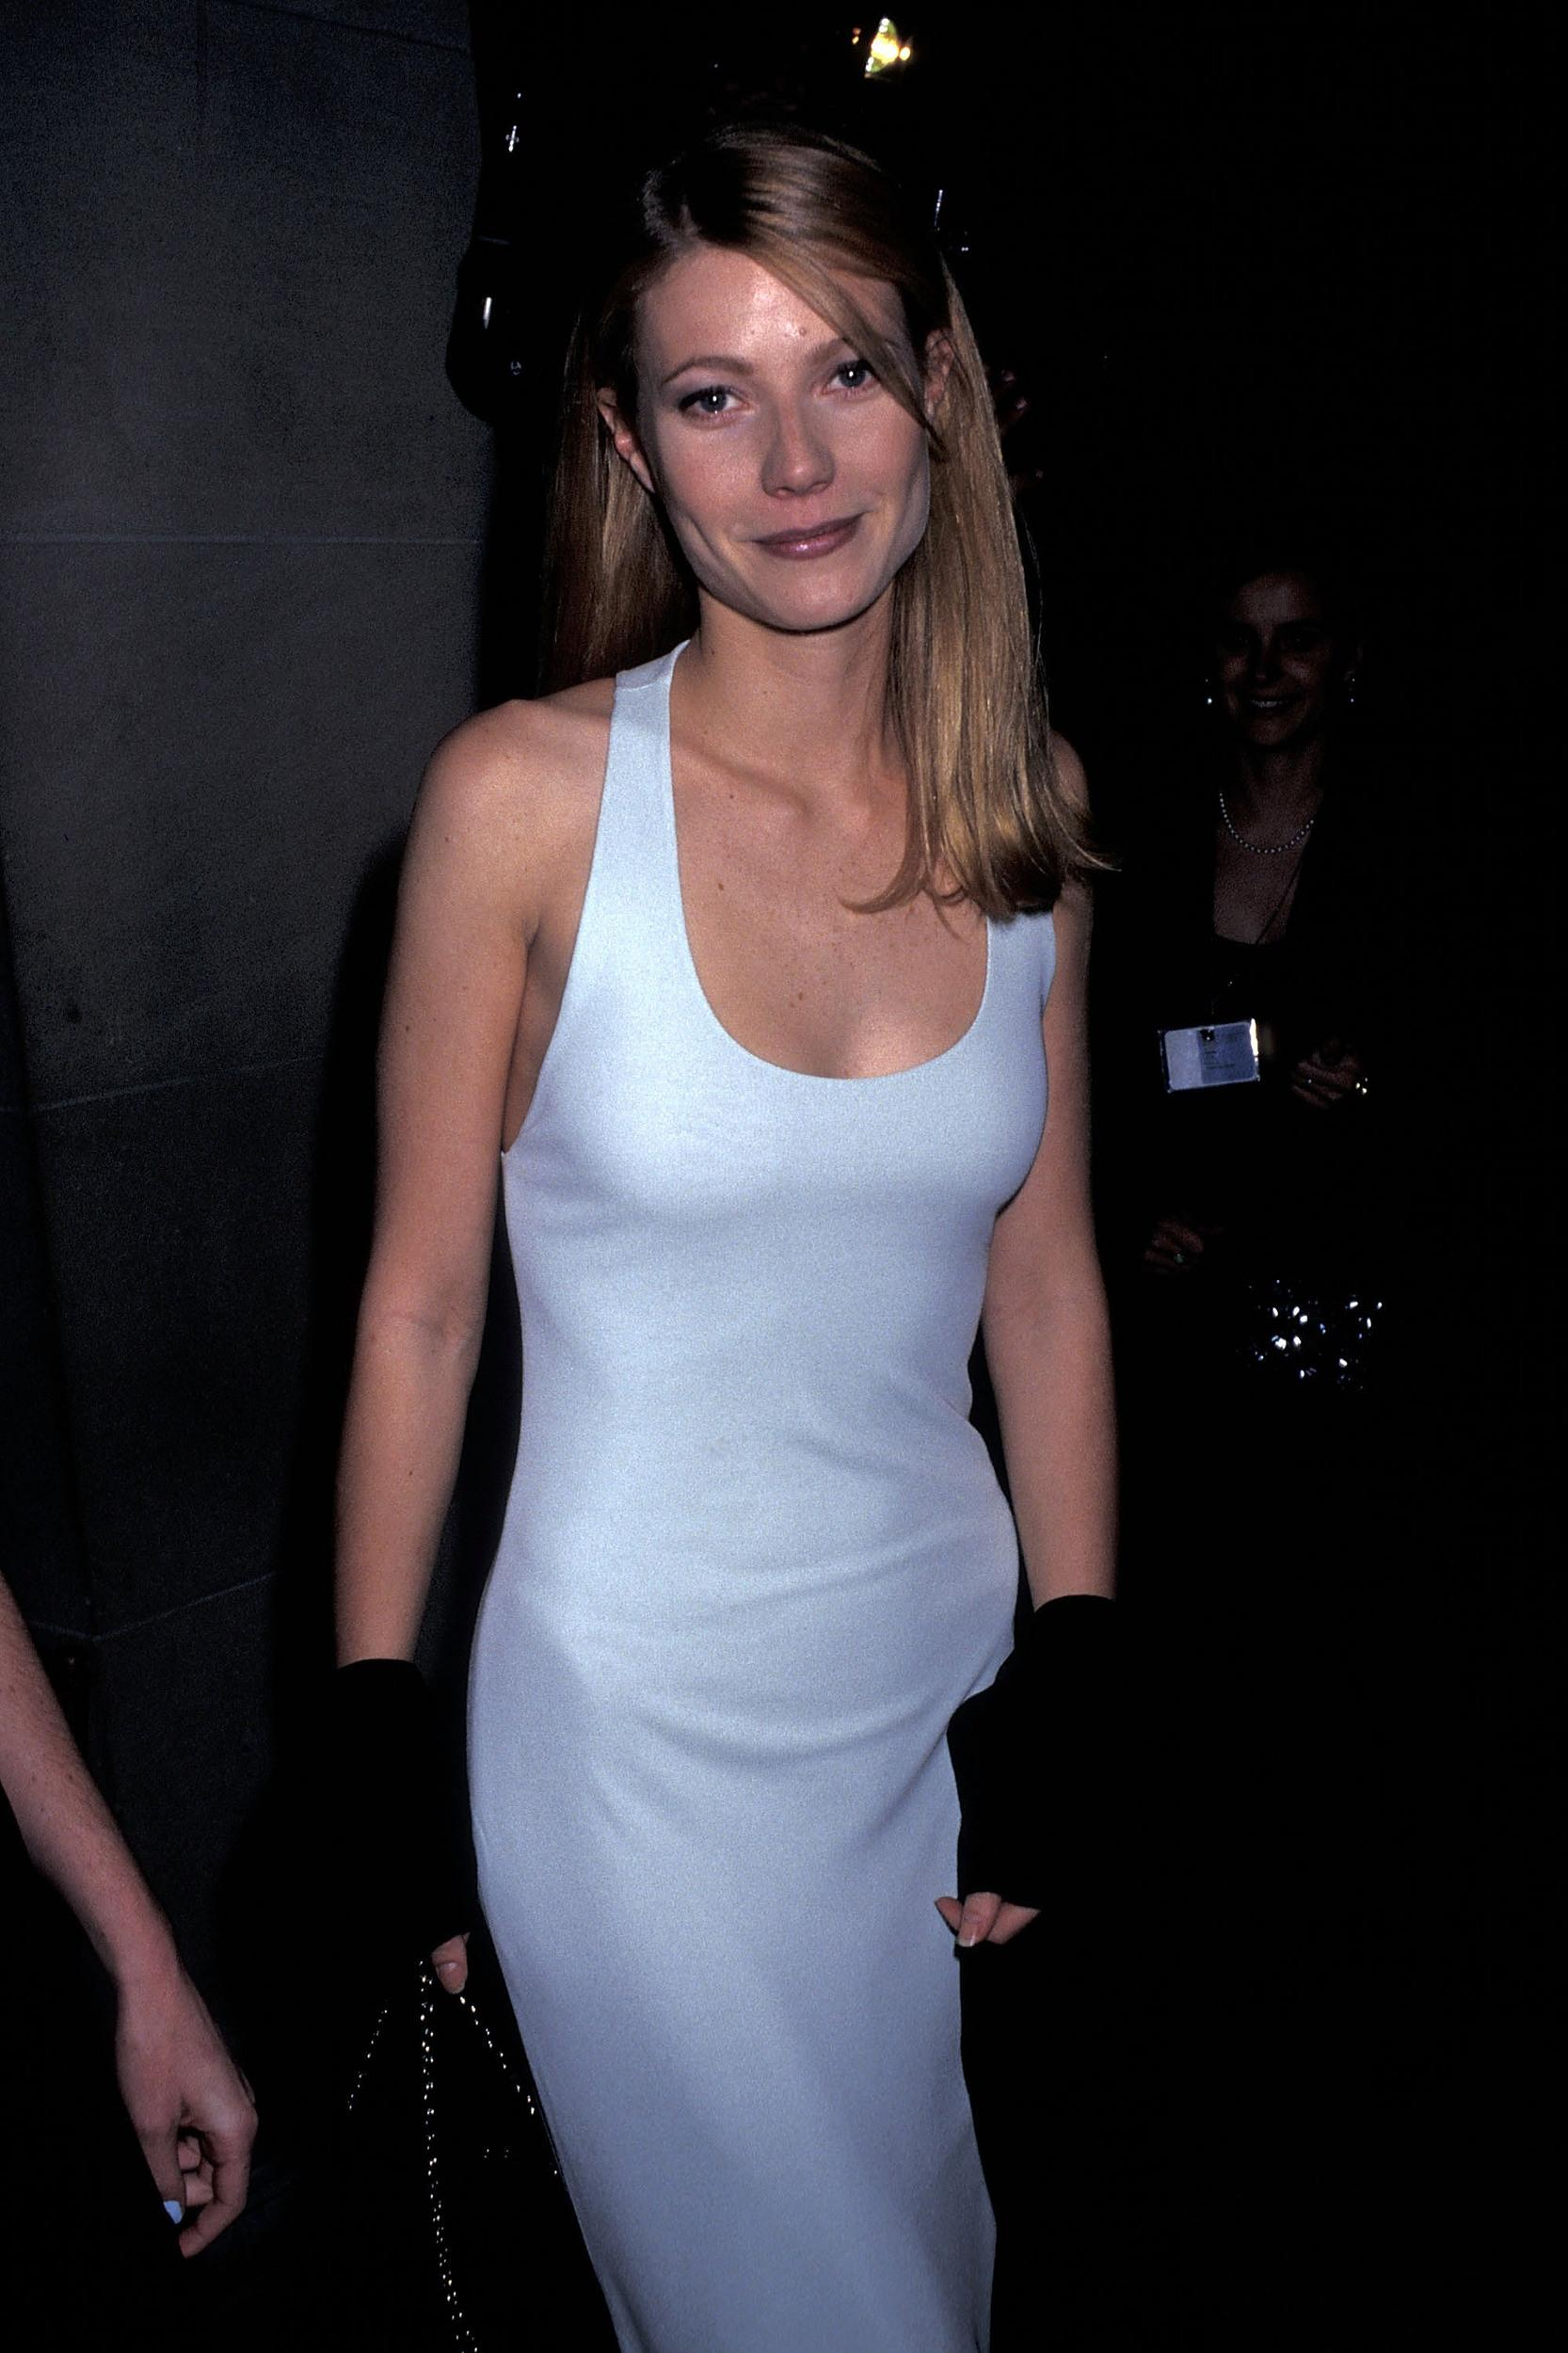 Actress Gwyneth Paltrow attends The Metropolitan Museum's Costume Institute Gala Exhibiton of 'Haute Couture' on December 4, 1995 at The Metropolitan Museum of Art in New York City.